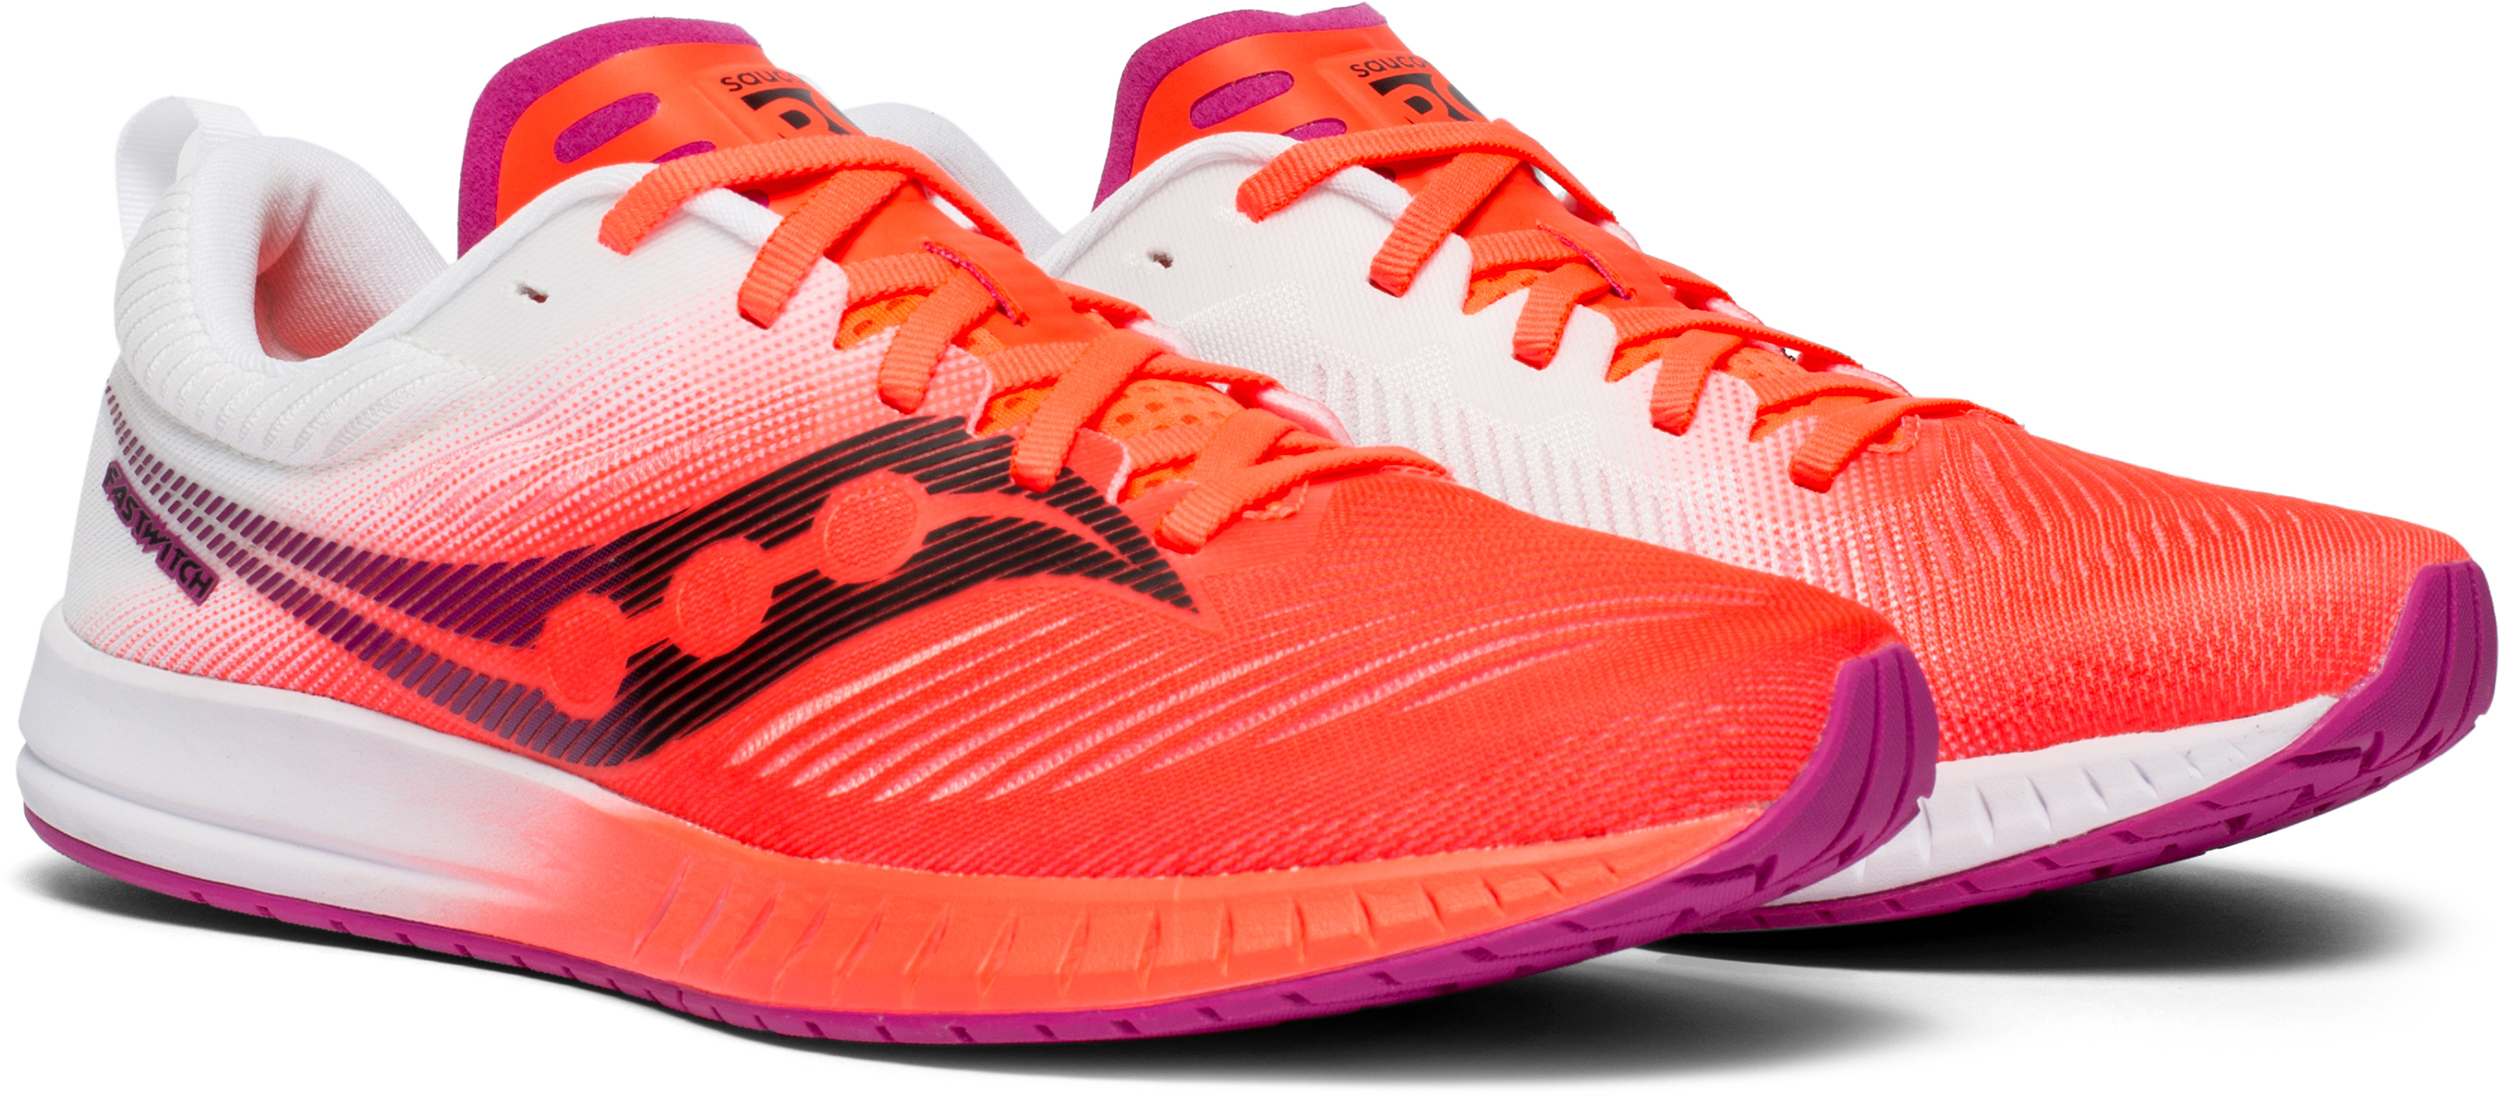 063294f7 Saucony Fastwitch 9 Road Running Shoes - Women's | MEC